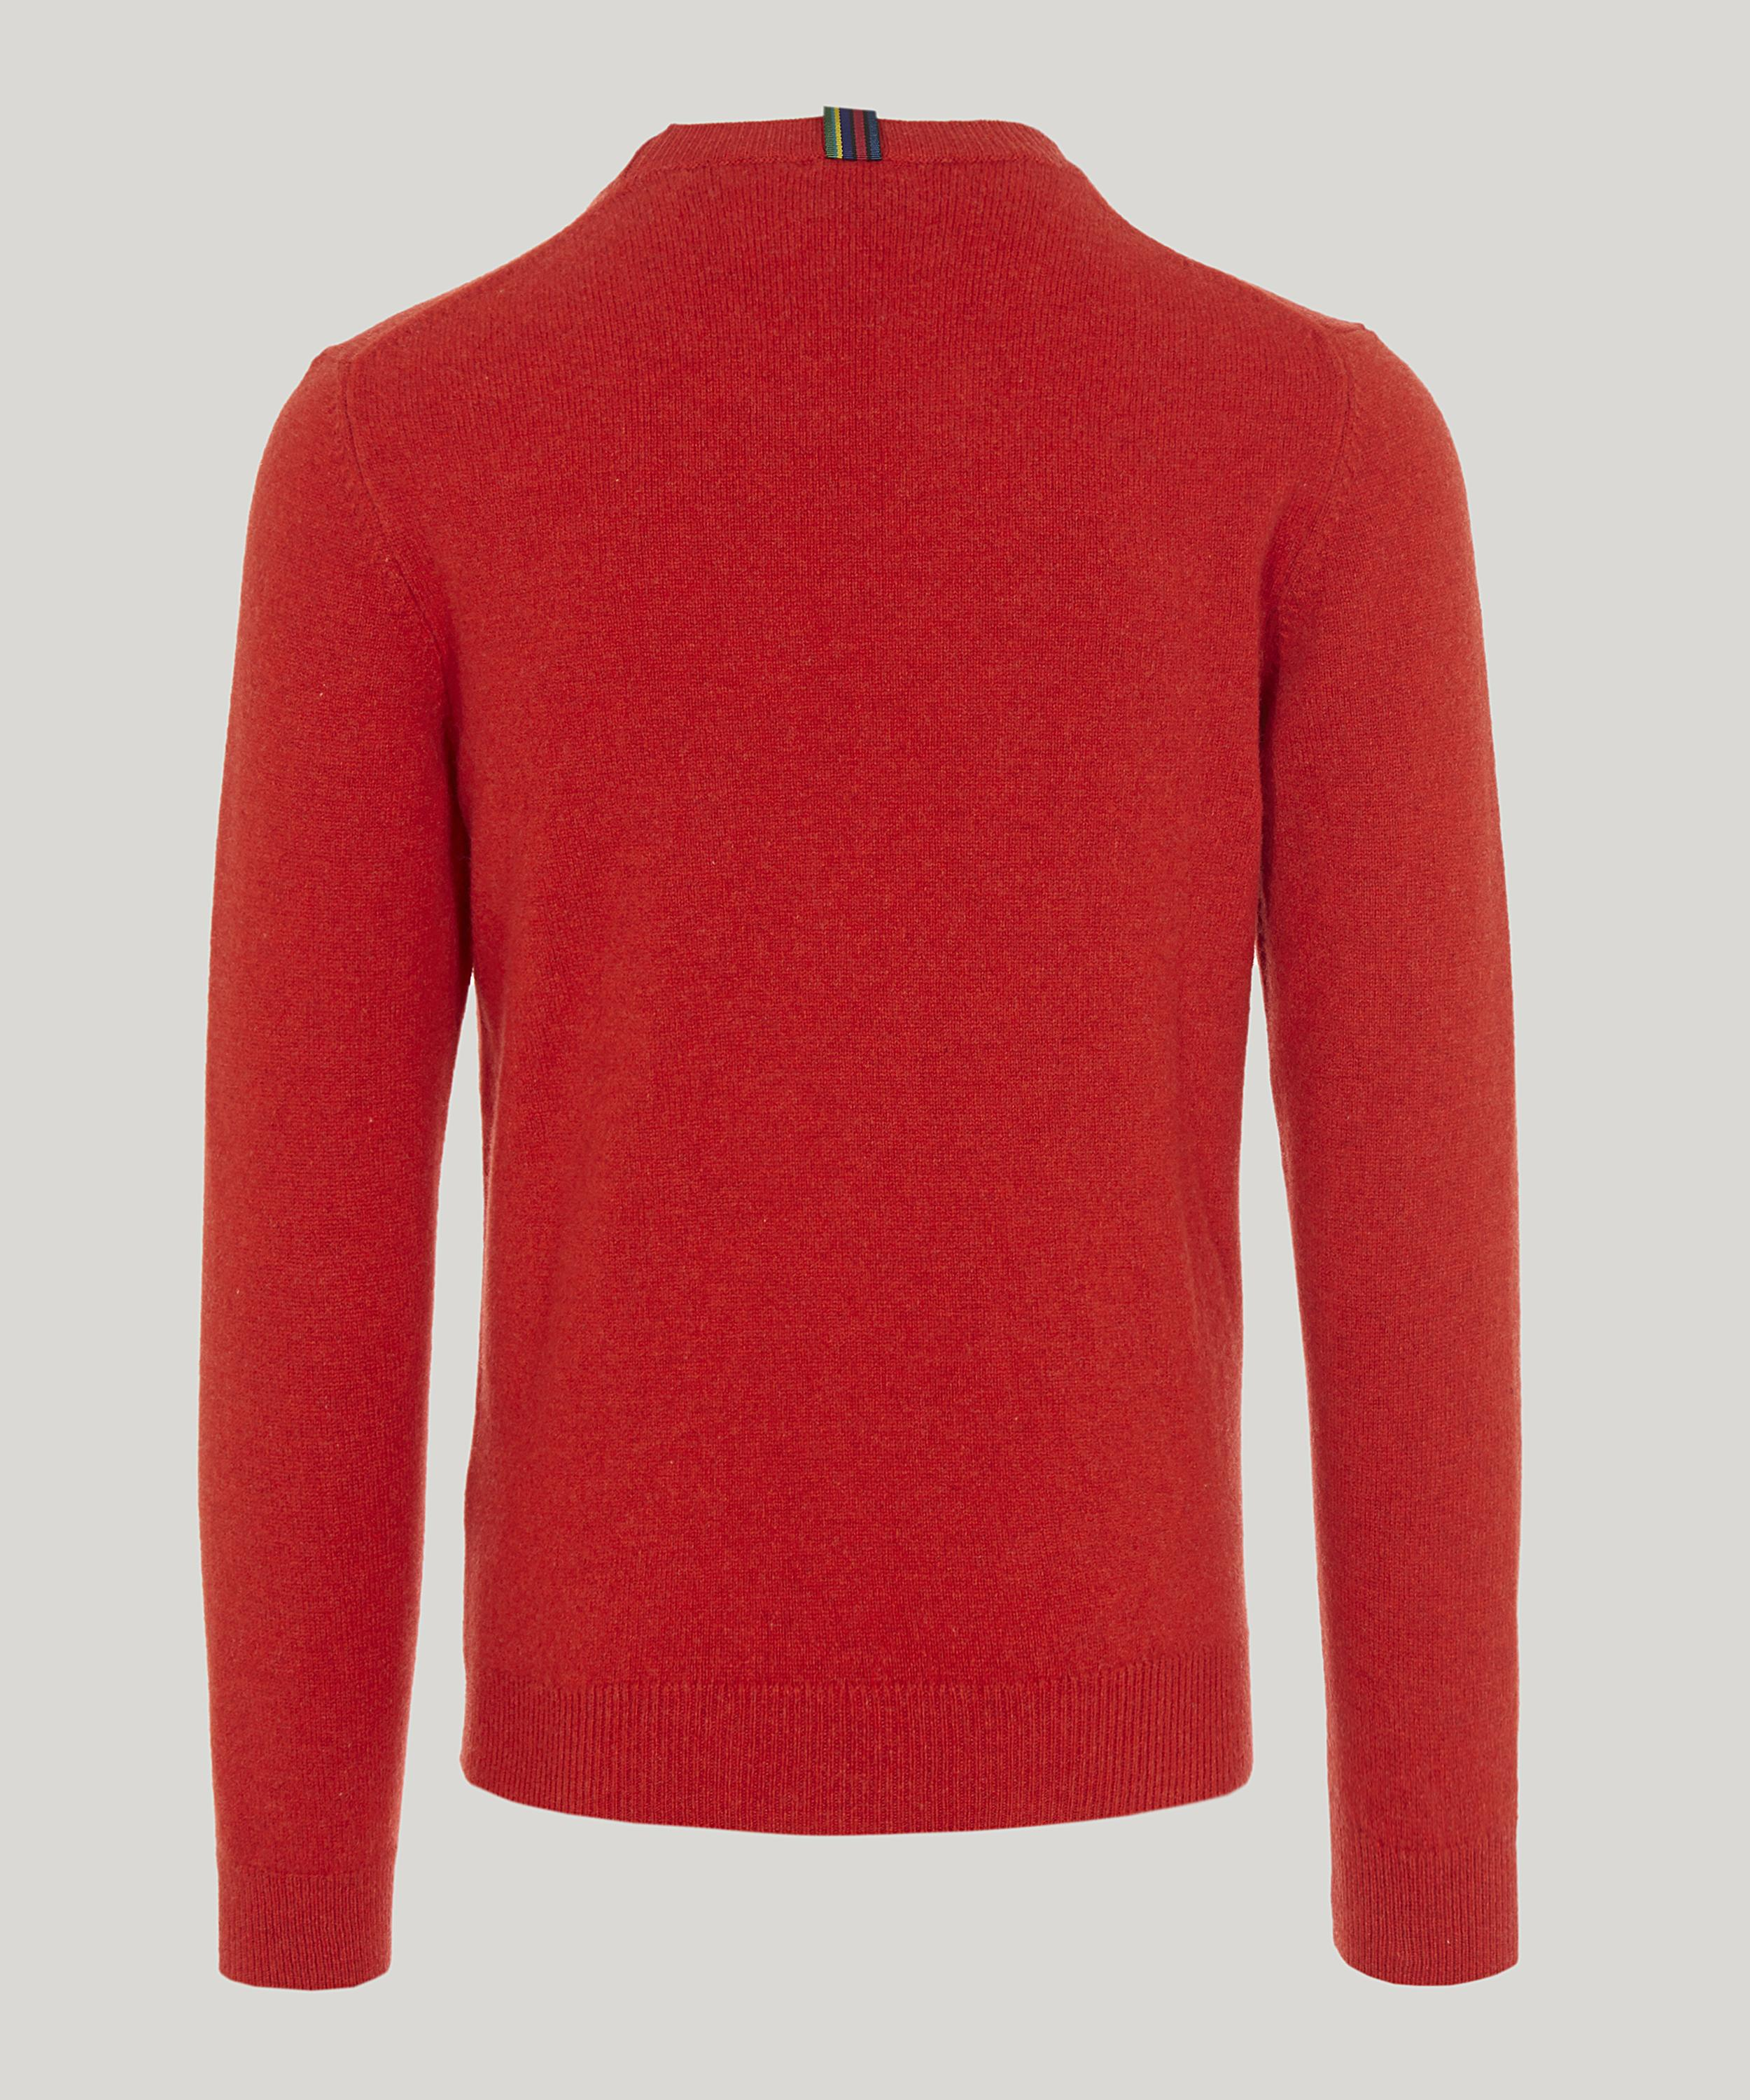 2c2c0a0cfa60 Lyst - Ps By Paul Smith Lambswool Sweater in Red for Men